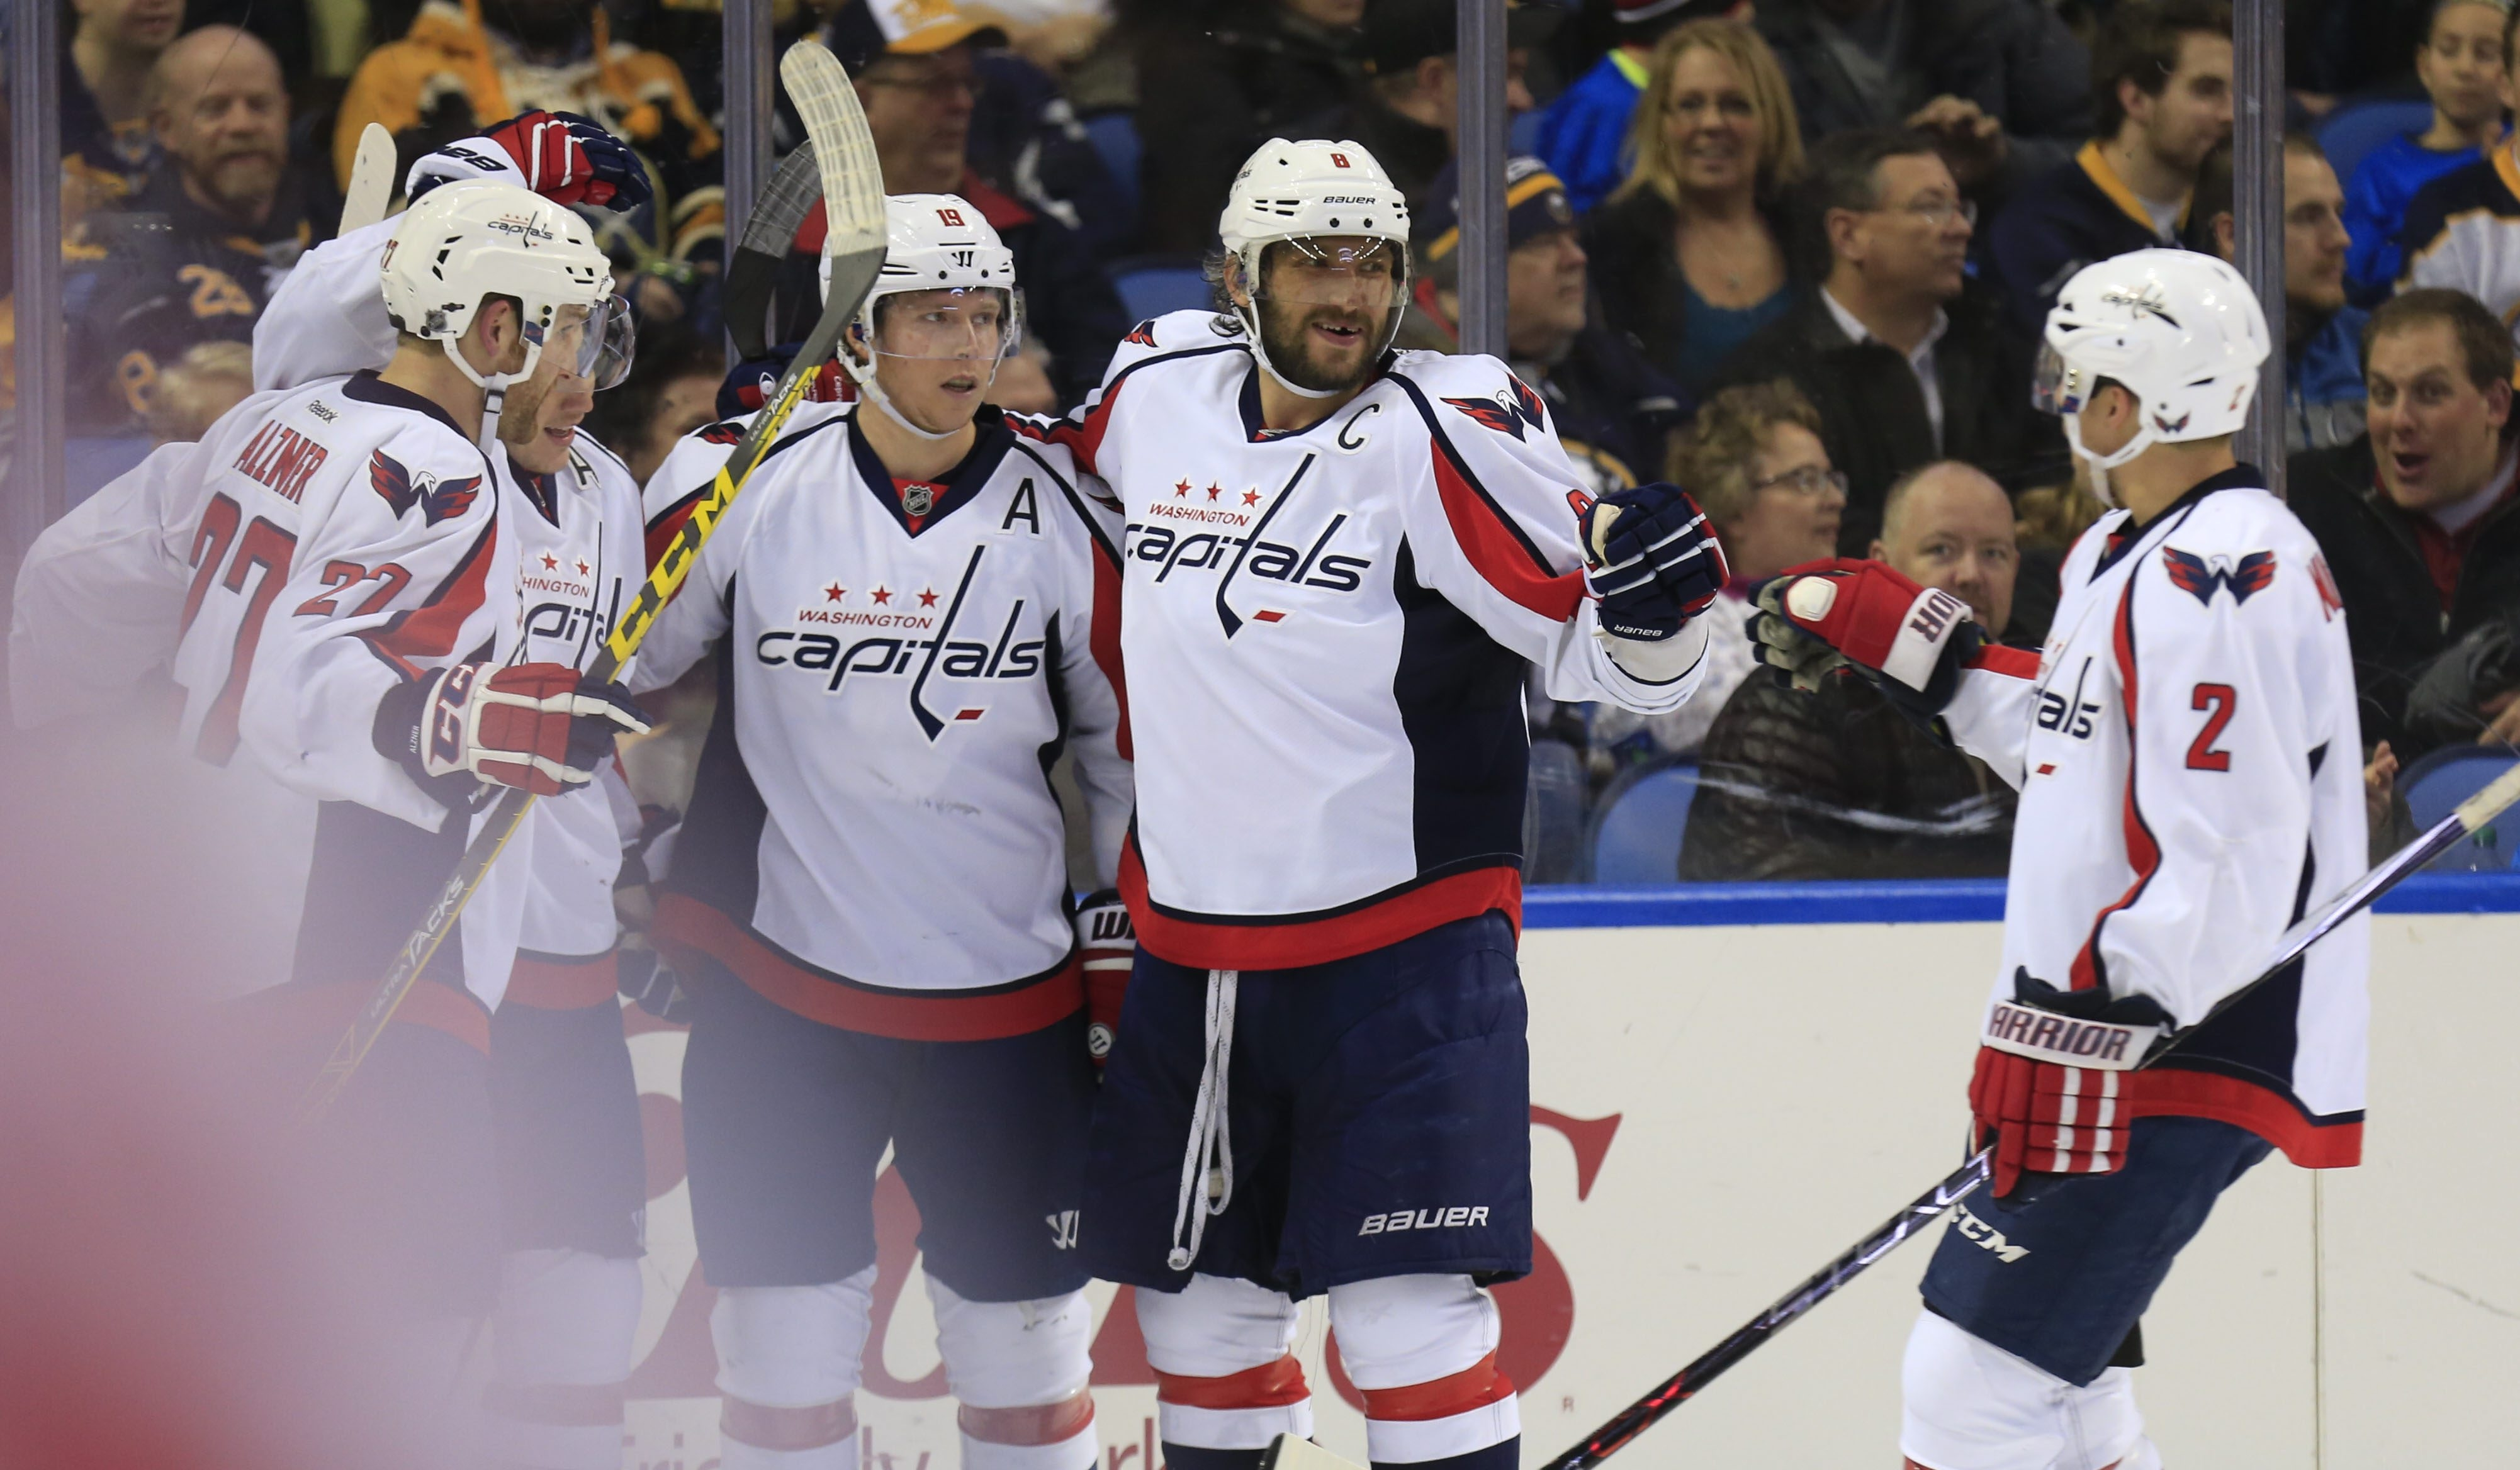 Capitals captain Alex Ovechkin celebrates his goal against the Sabres during second period Monday at the First Niagara Center.